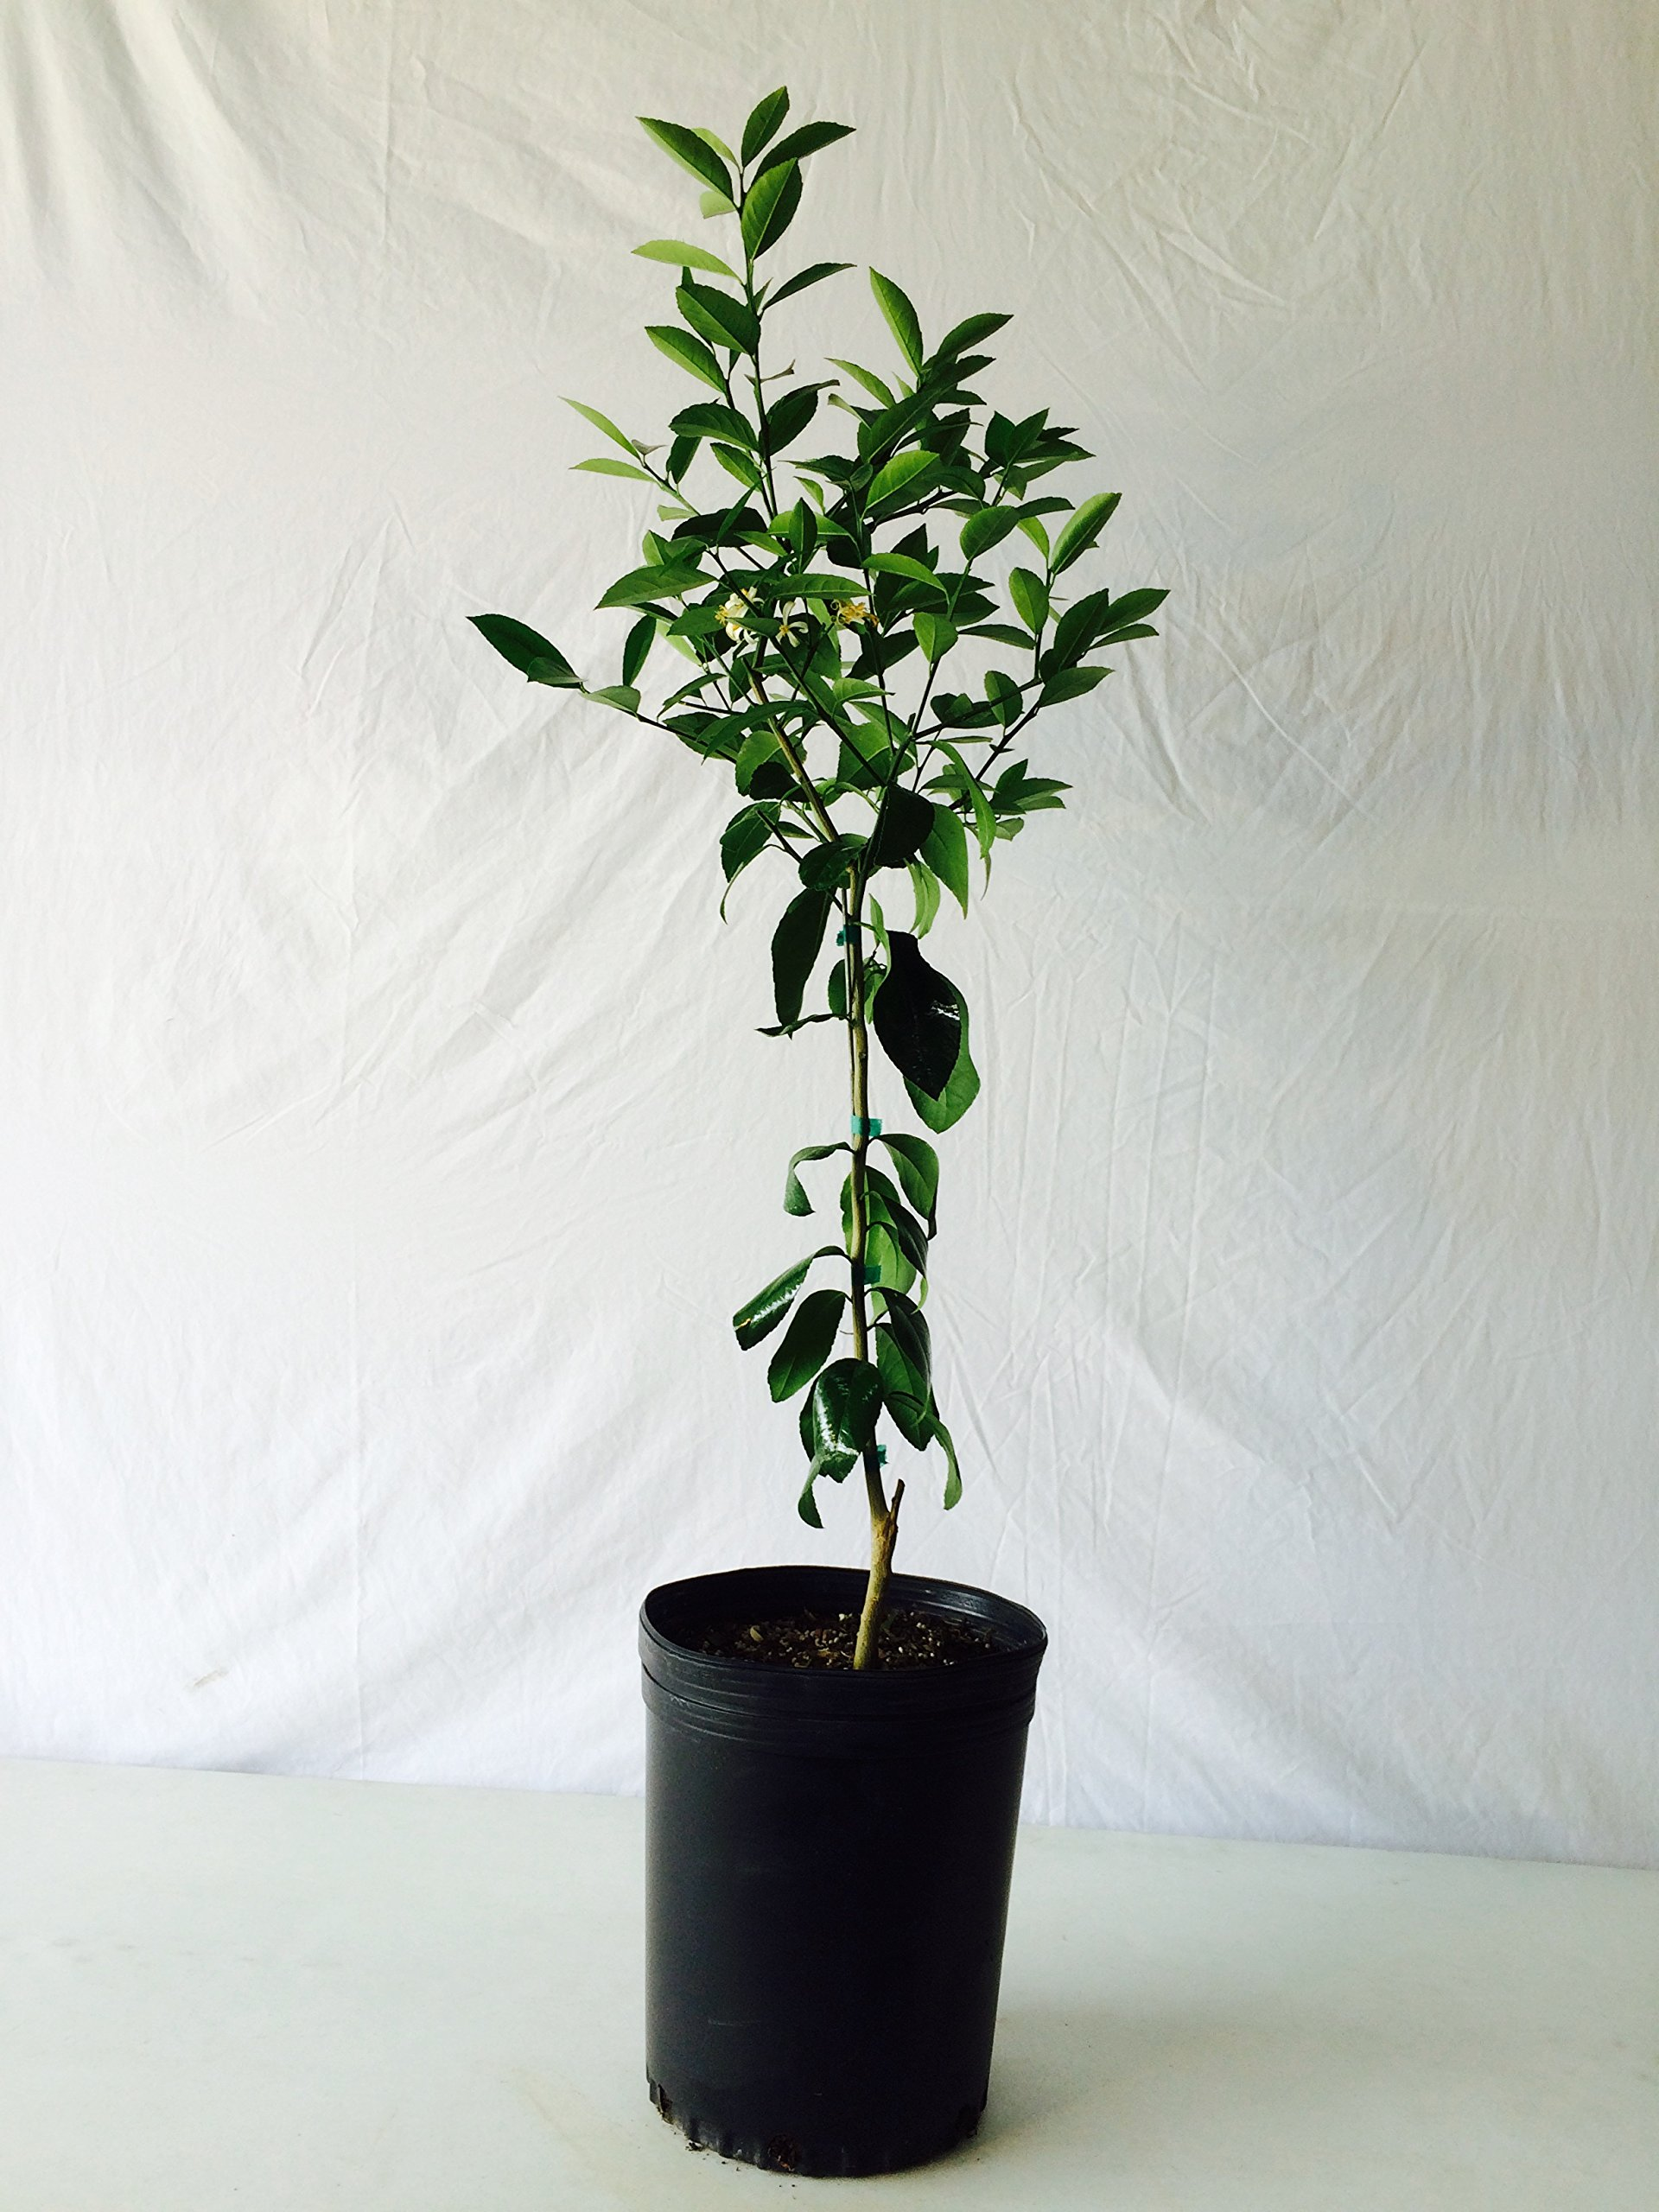 3-4 Foot Owari Satsuma Orange Tree in 3.5-Gallon Pot by CitrusTreeNursery.com